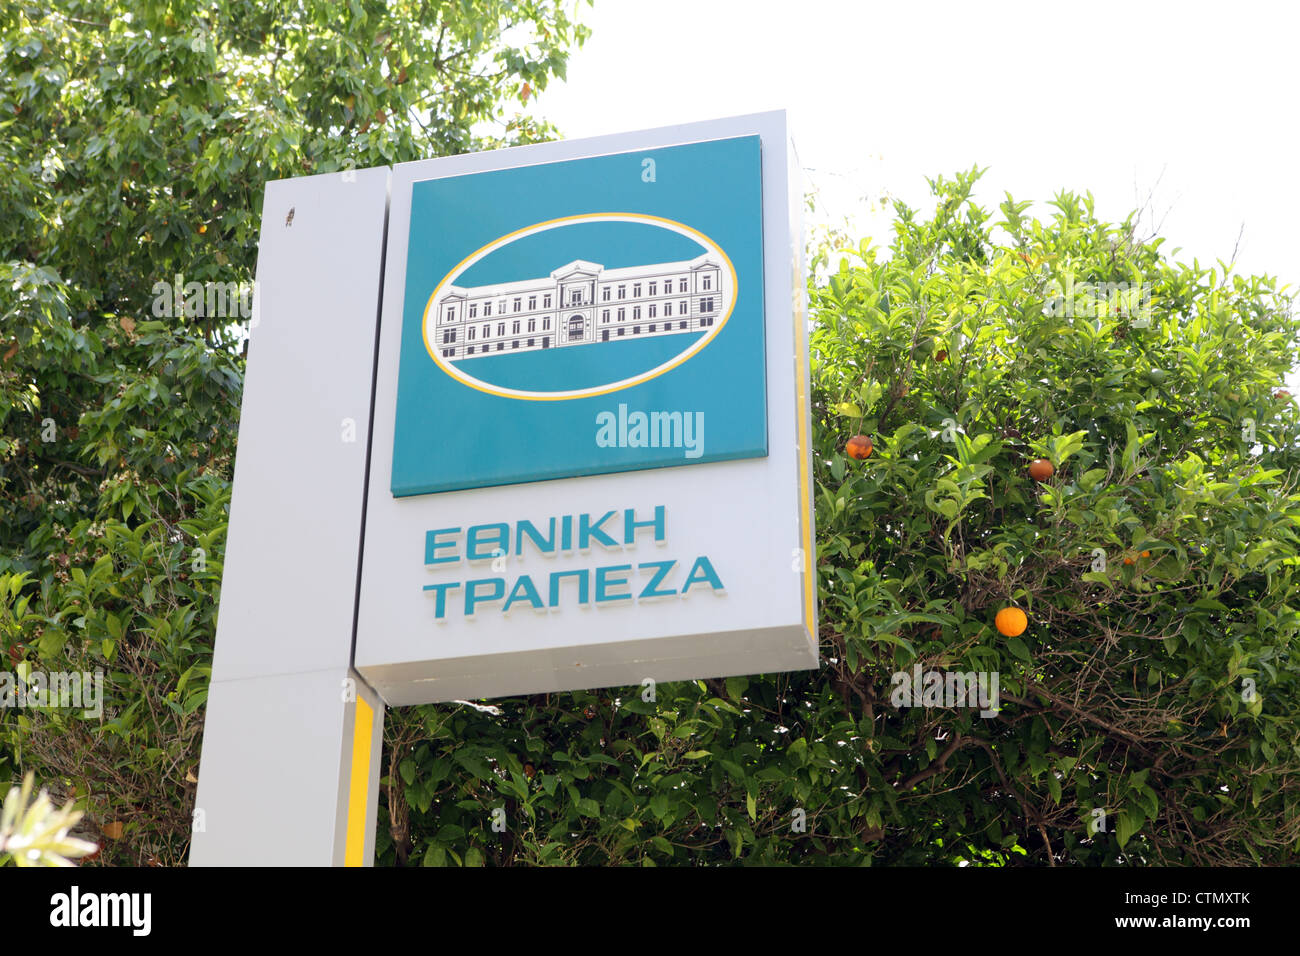 The Greek National Bank (Ethniki Trapeza) sign outside the branck in Rethymno, Crete. - Stock Image